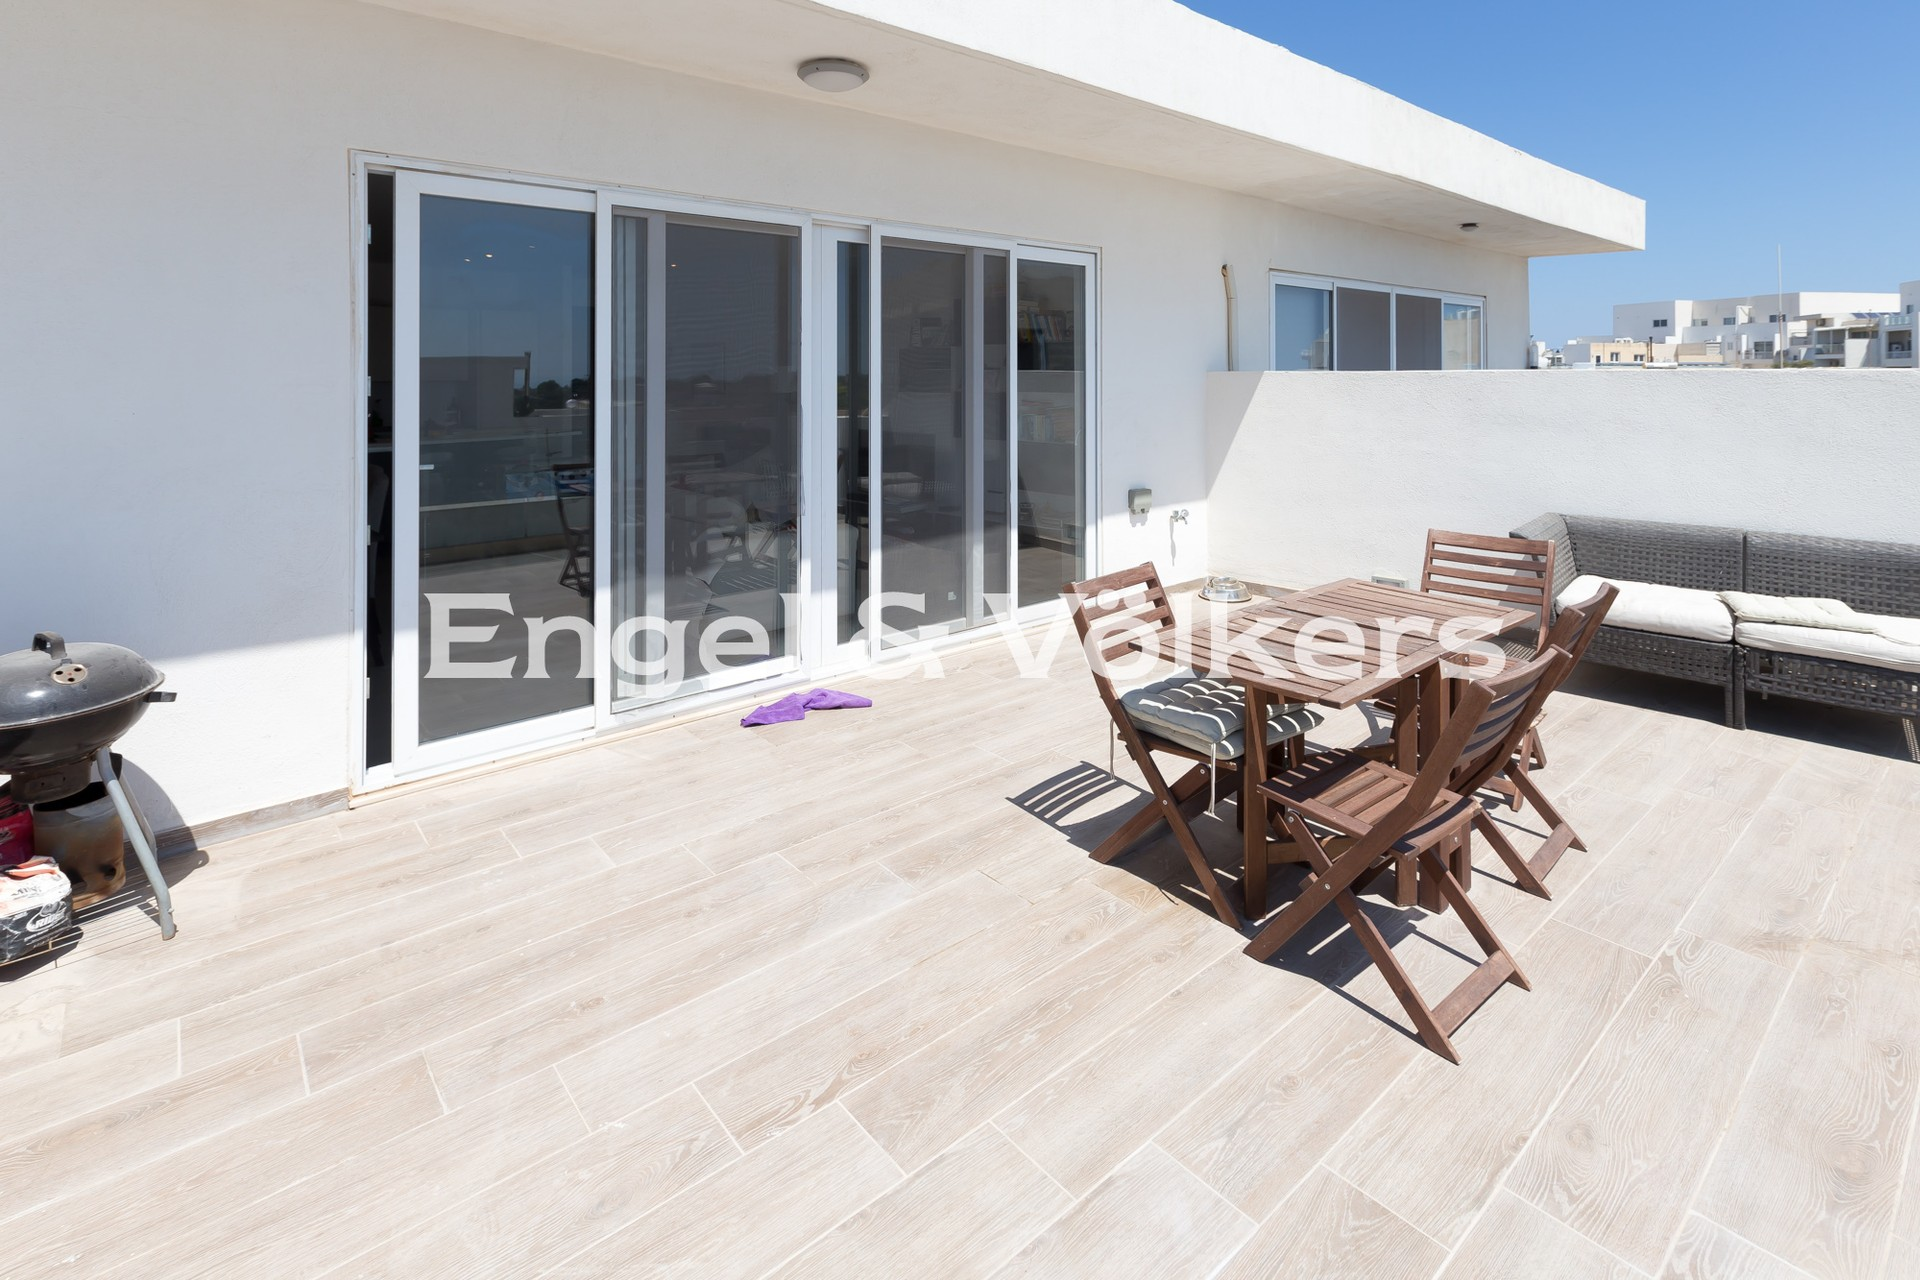 Apartment in Gharghur - Penthouse, Ghargur, Terrace with BBQ Area and outdoor furniture